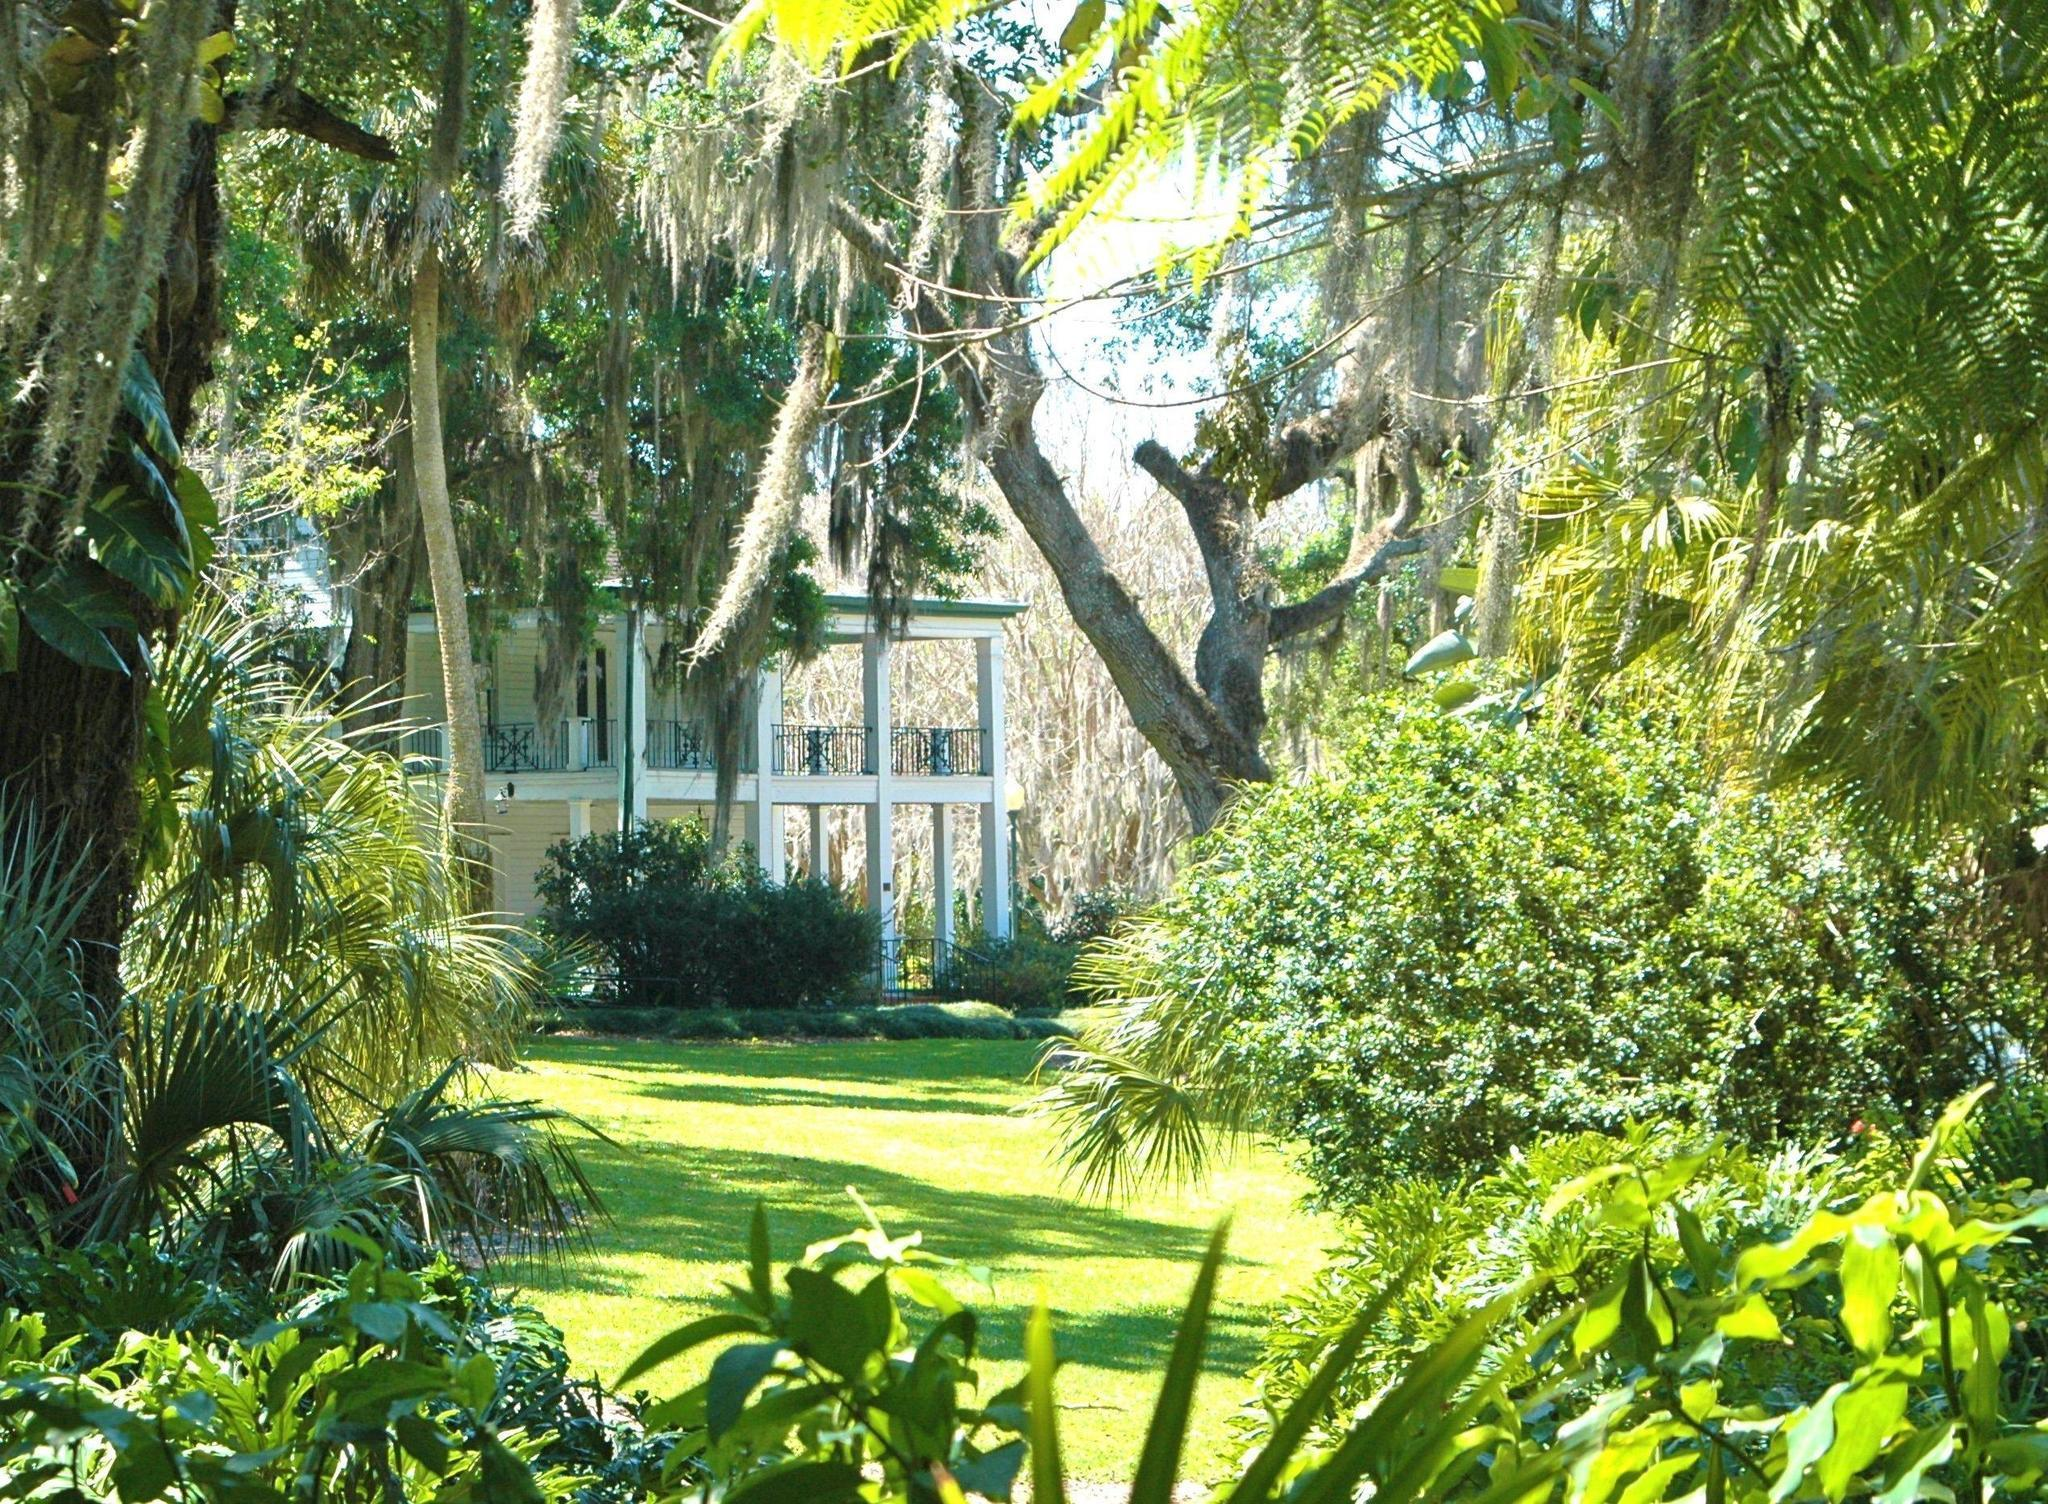 Gardens 39 Past Includes Talk Of Town Romances Orlando Sentinel